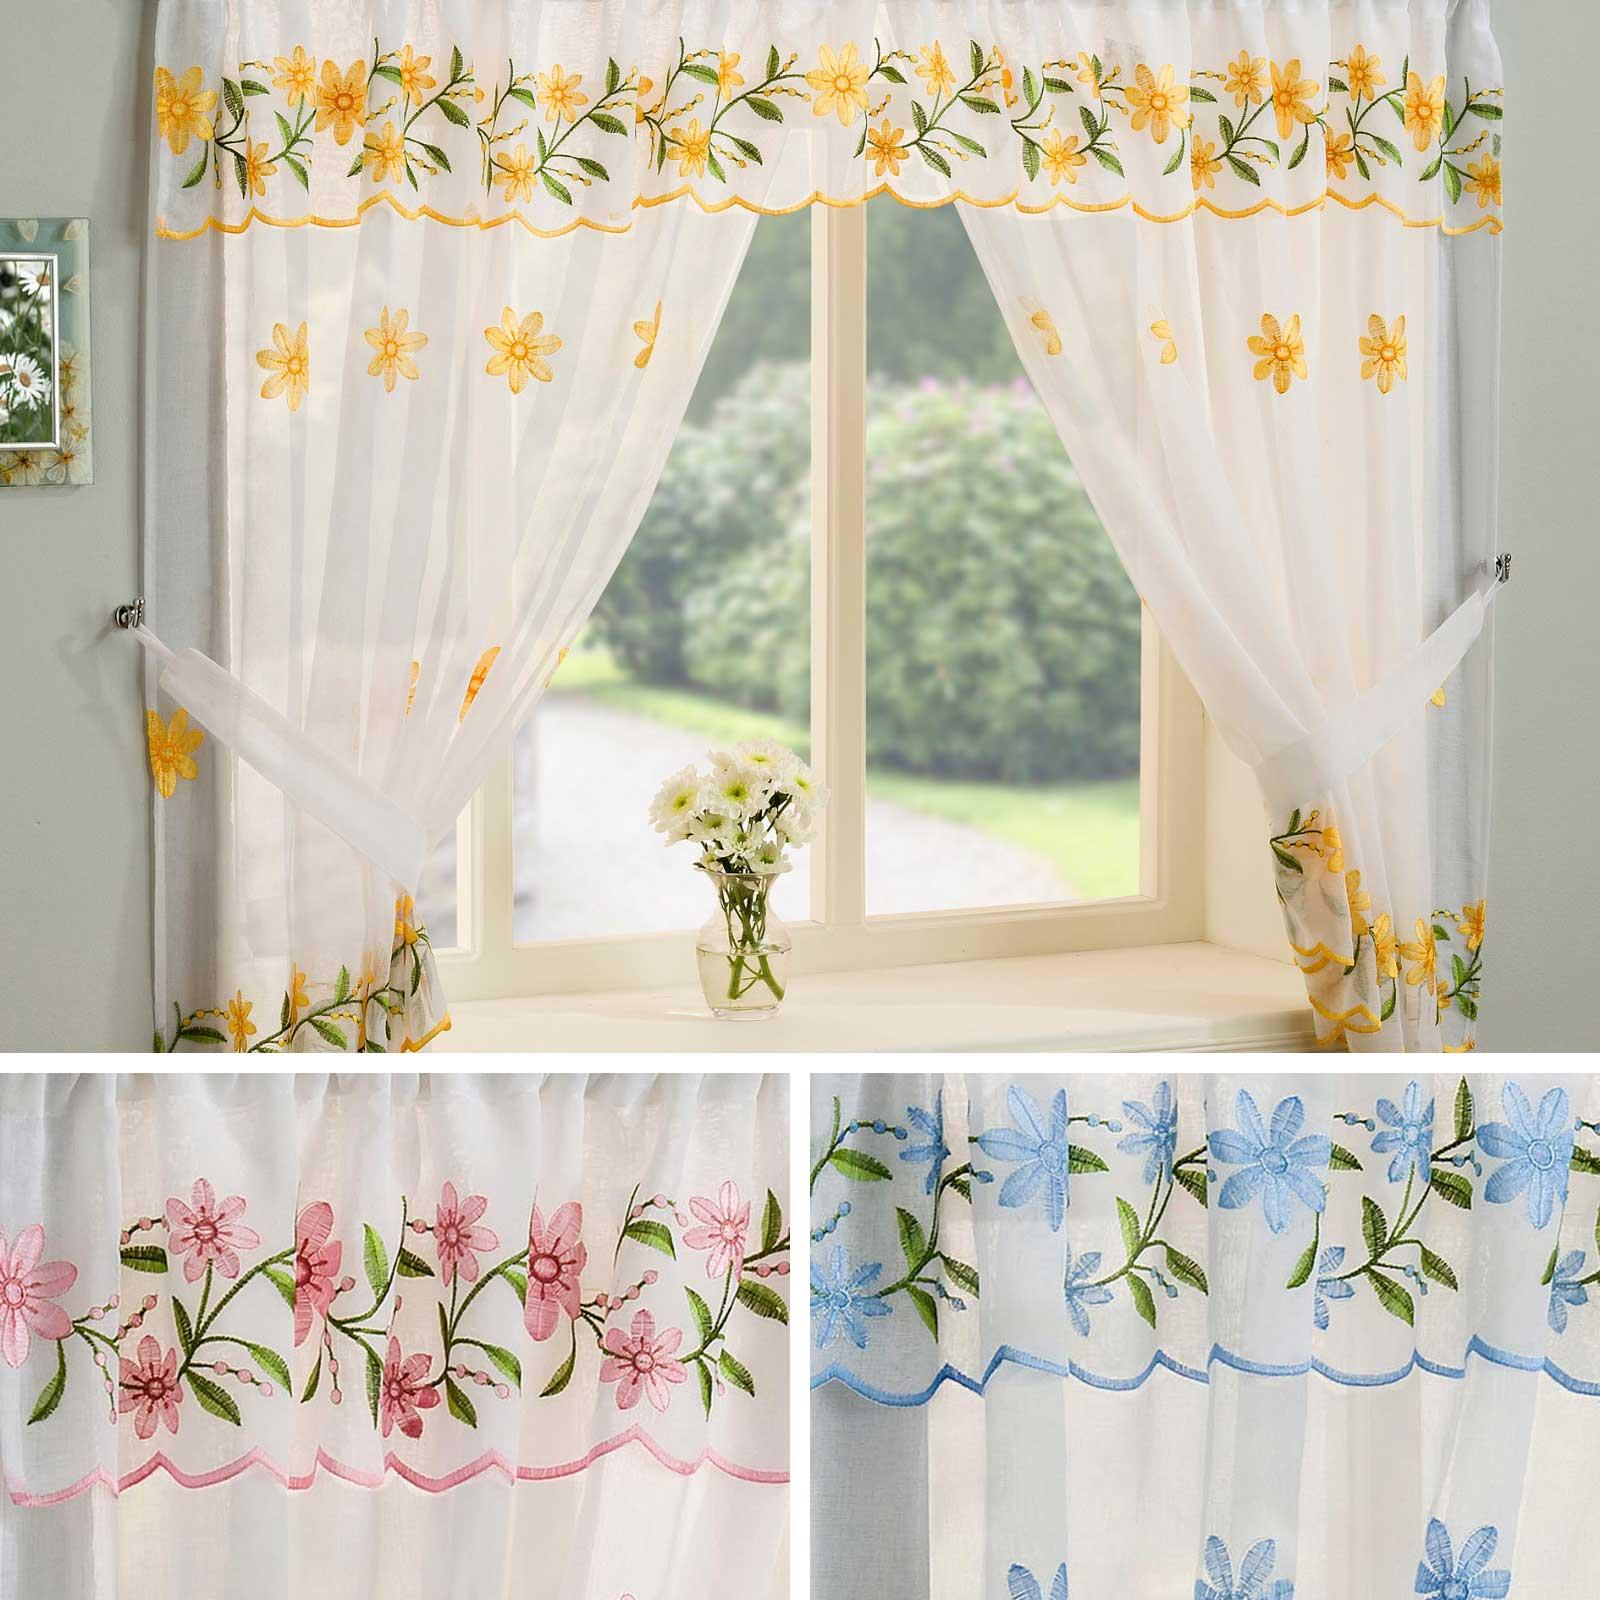 Details About Floral Curtain Set Daisy Complete Window Ready Made Embroidered Lace Curtains Within Glasgow Curtain Tier Sets (View 13 of 20)